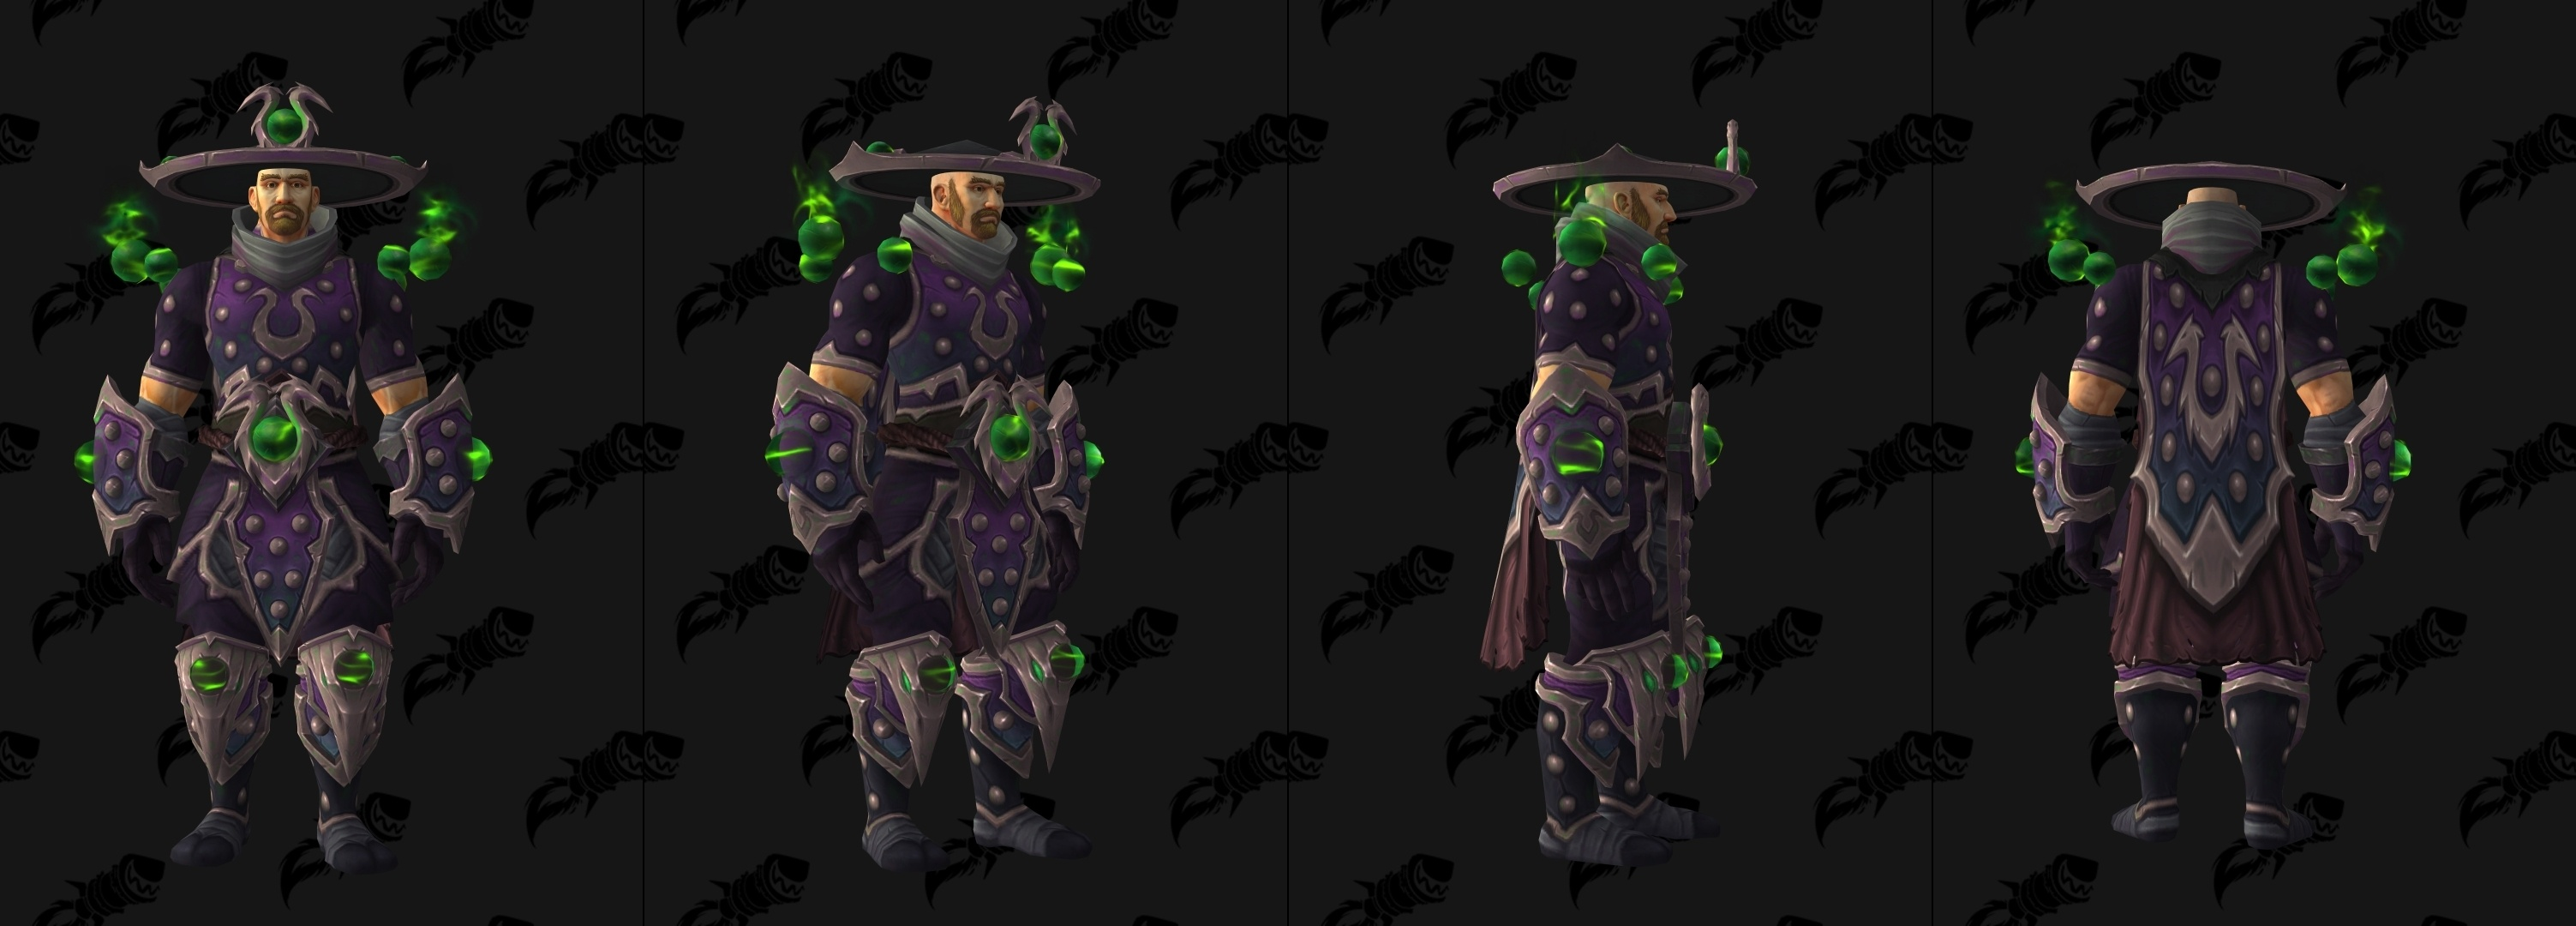 Helm Monk Tier 21 Armor Sets Guides Wowhead Screenshots And Transmog Links